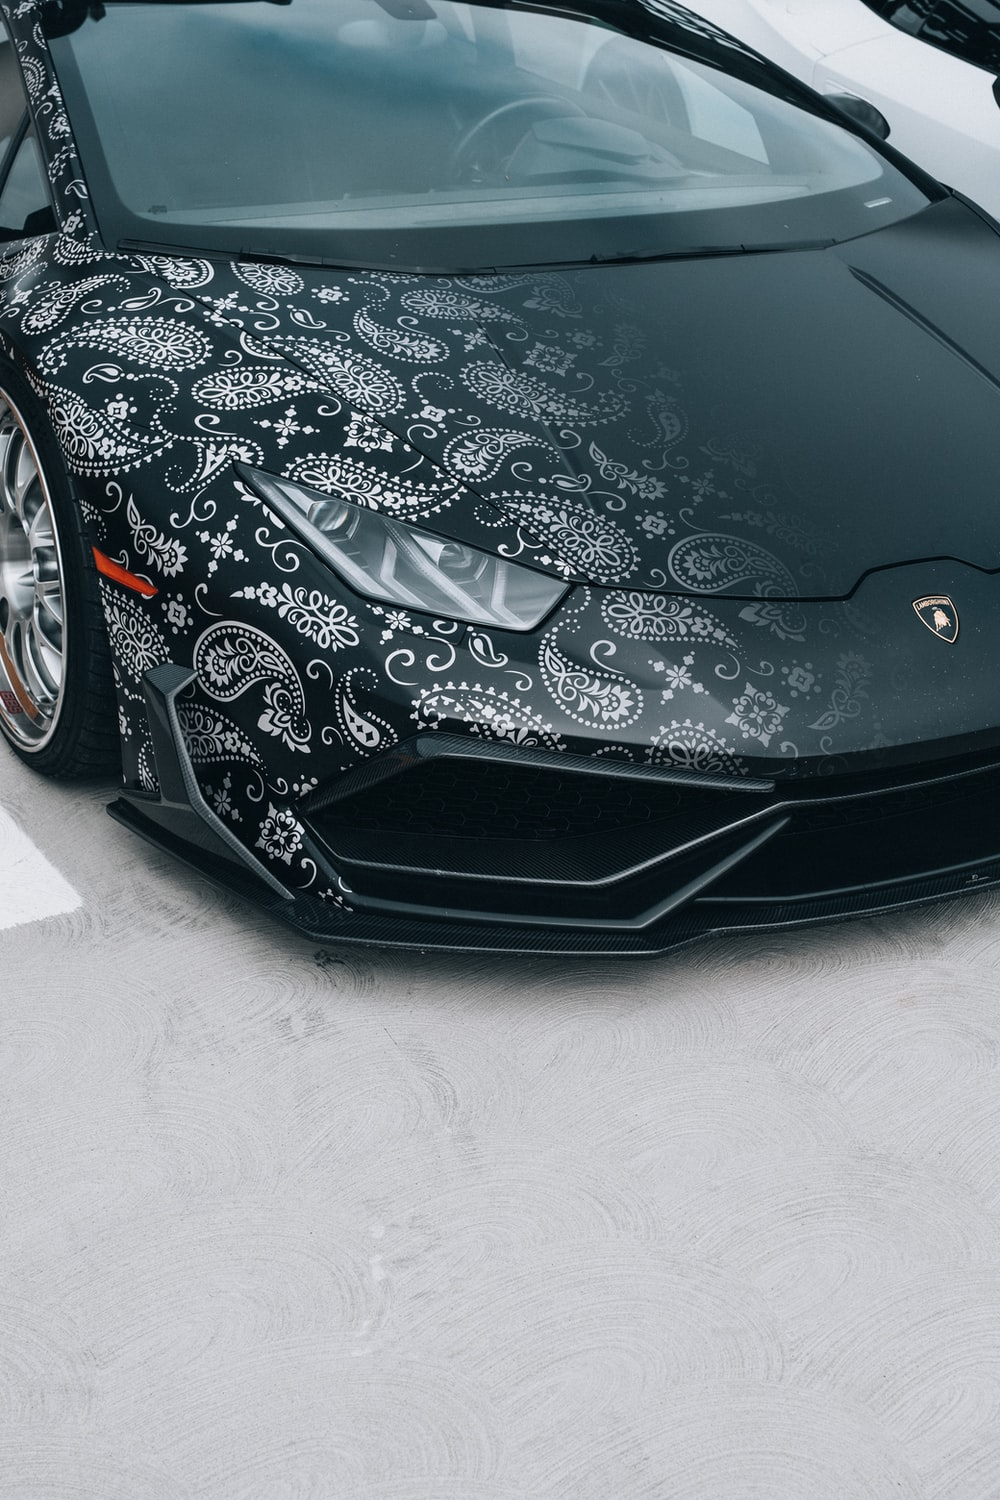 black ferrari car on white floor